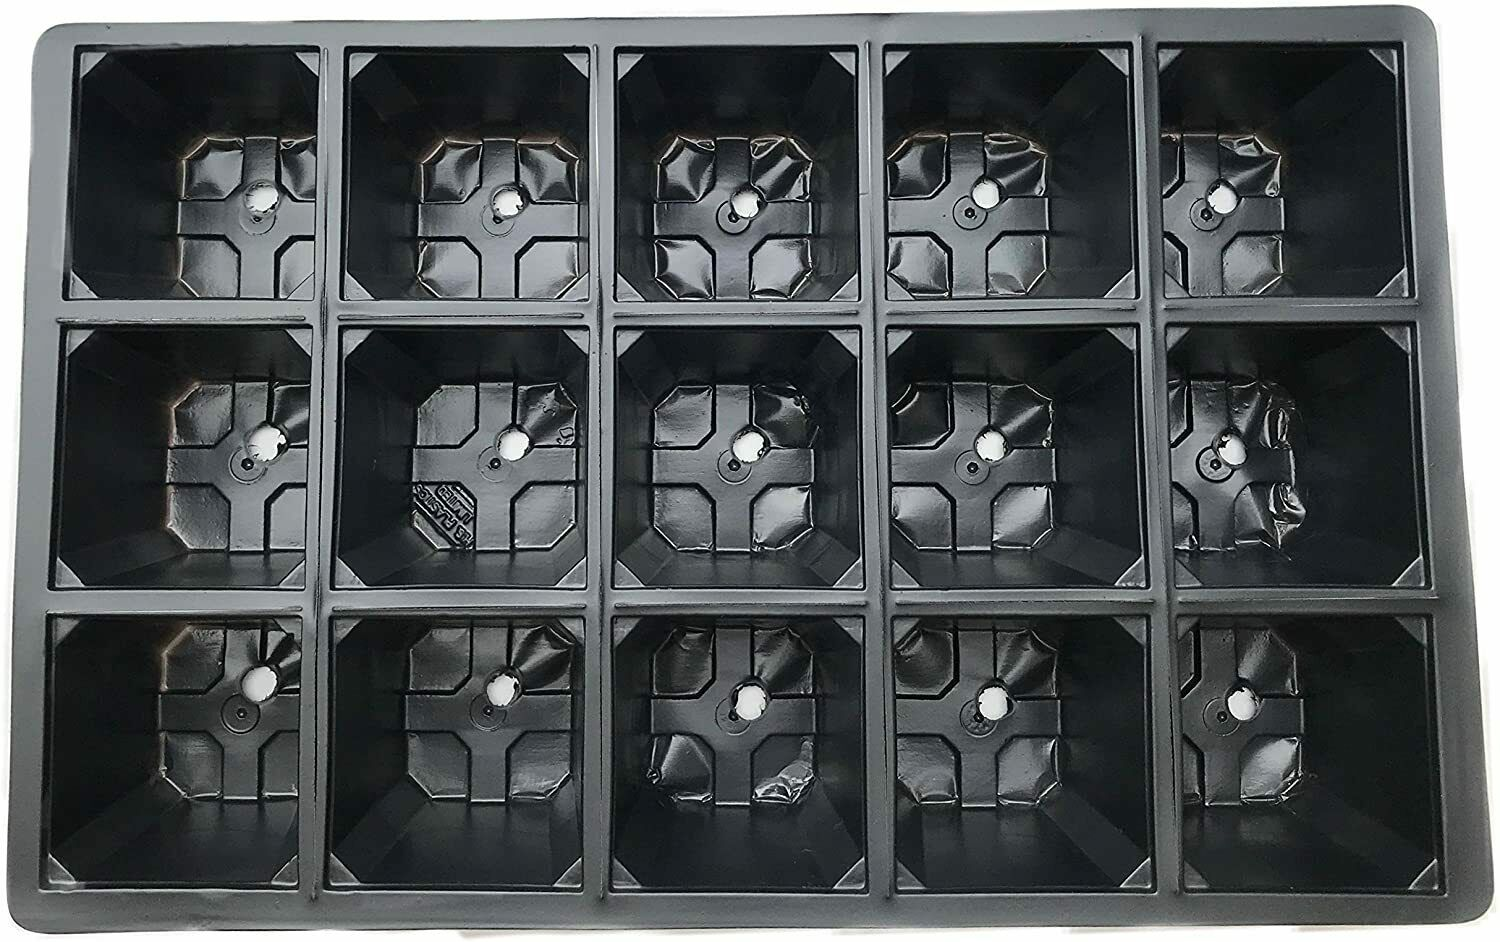 15 Cell Packof 80 Professional Grade Seed Trays Bedding Plant Seed Propagat Tray